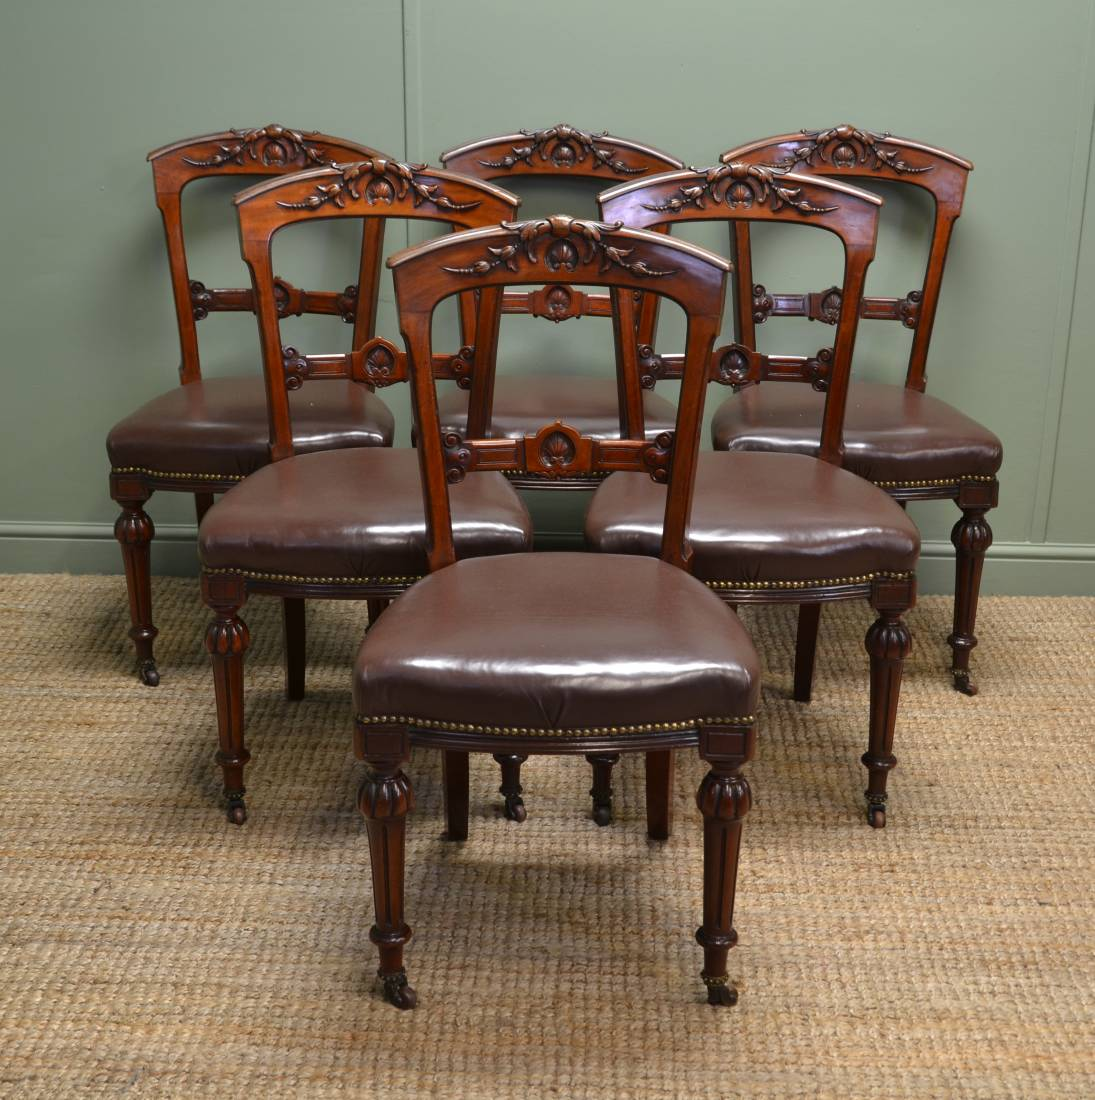 Superb Quality Set of Six Victorian Antique Walnut Dining Chairs - Superb Quality Set Of Six Victorian Antique Walnut Dining Chairs